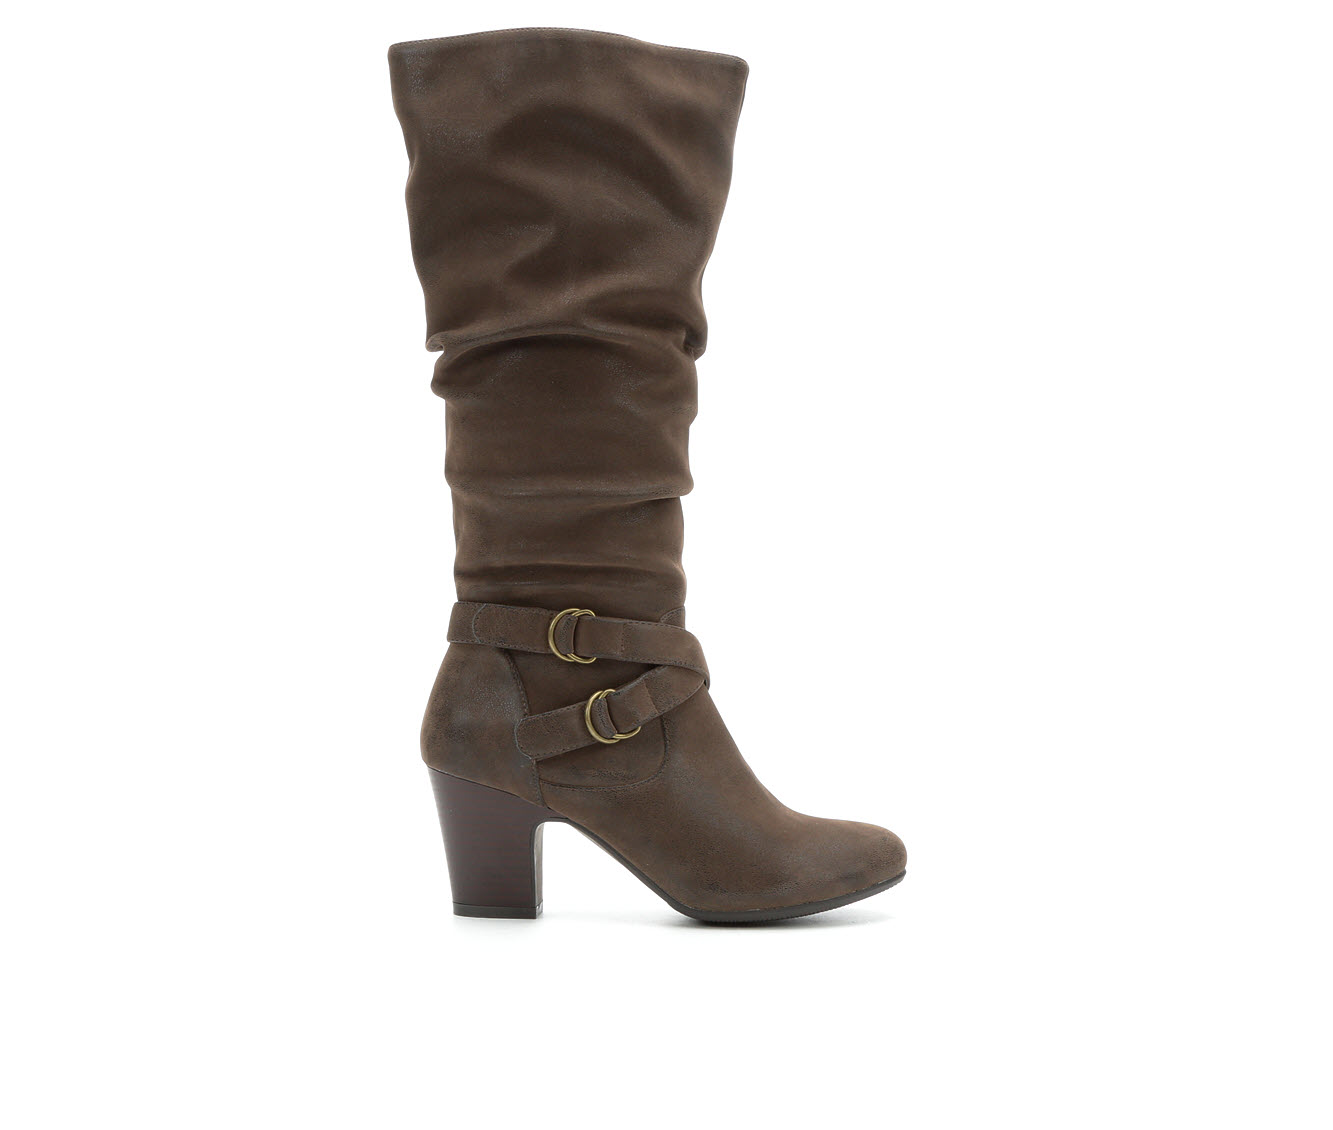 Solanz Poesy Women's Boots (Brown - Faux Leather)